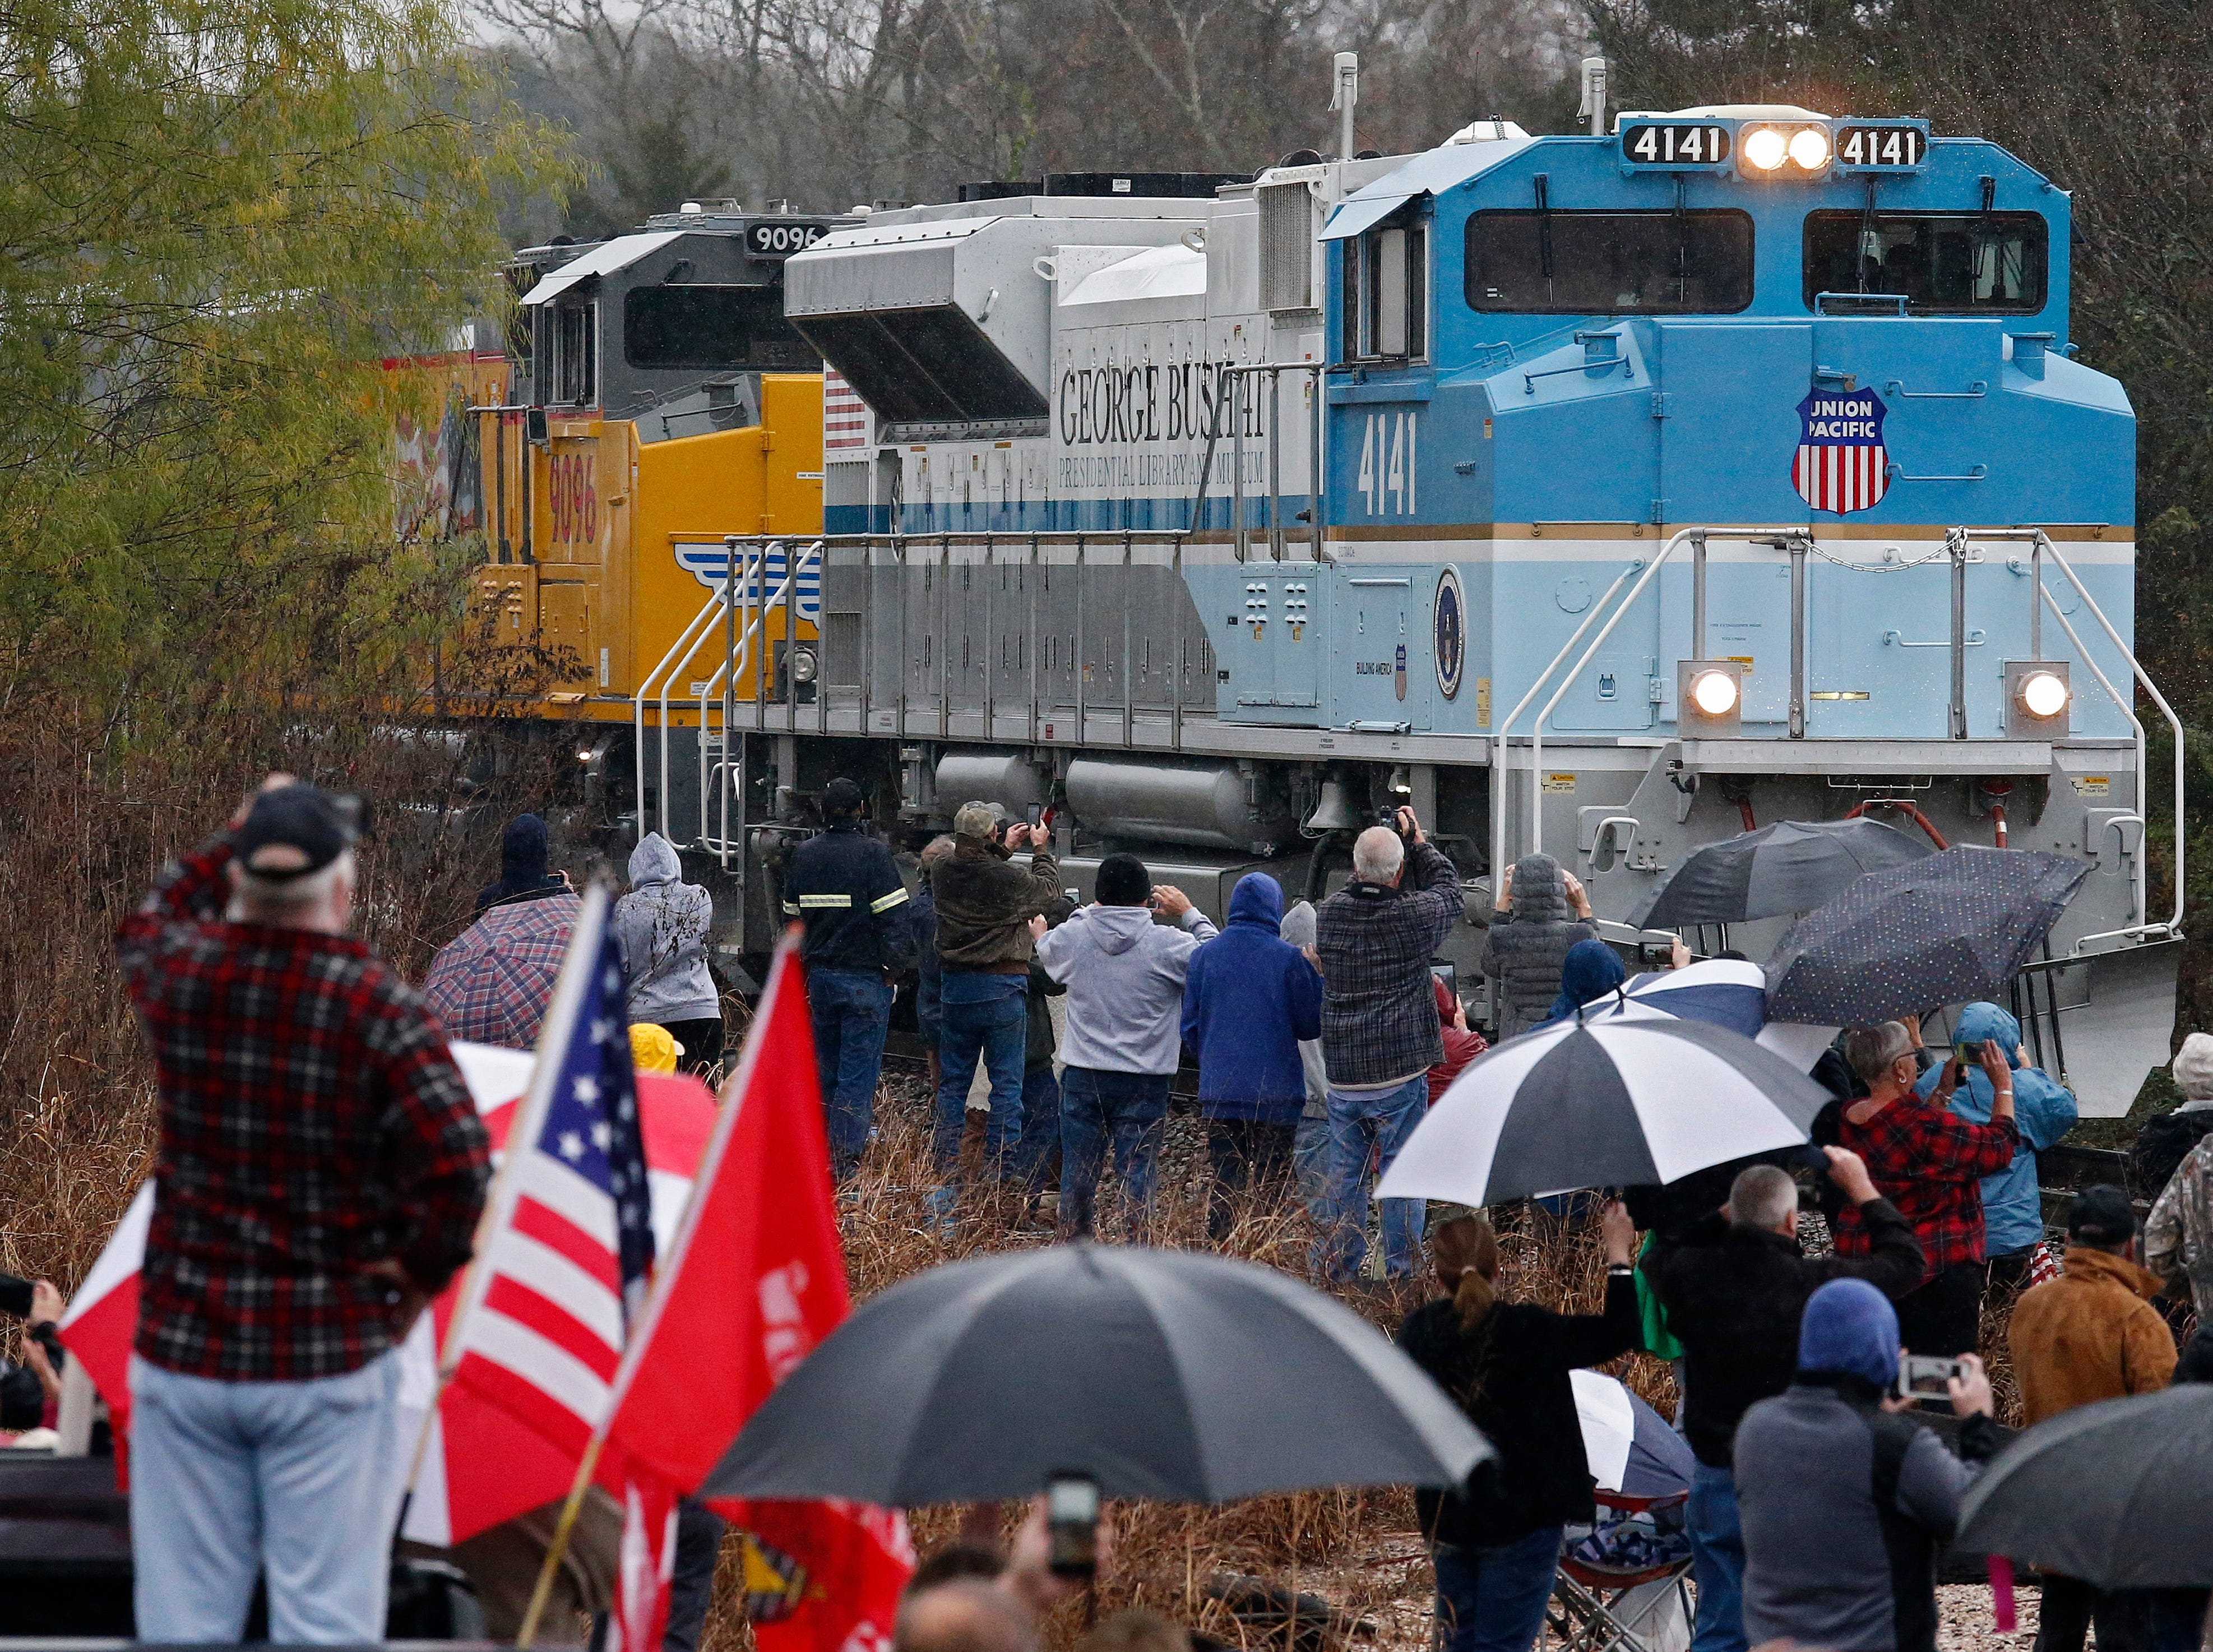 People watch as the train carrying the casket of former President George H.W. Bush passes by in the country near Millican, Texas on Dec. 6, 2018.